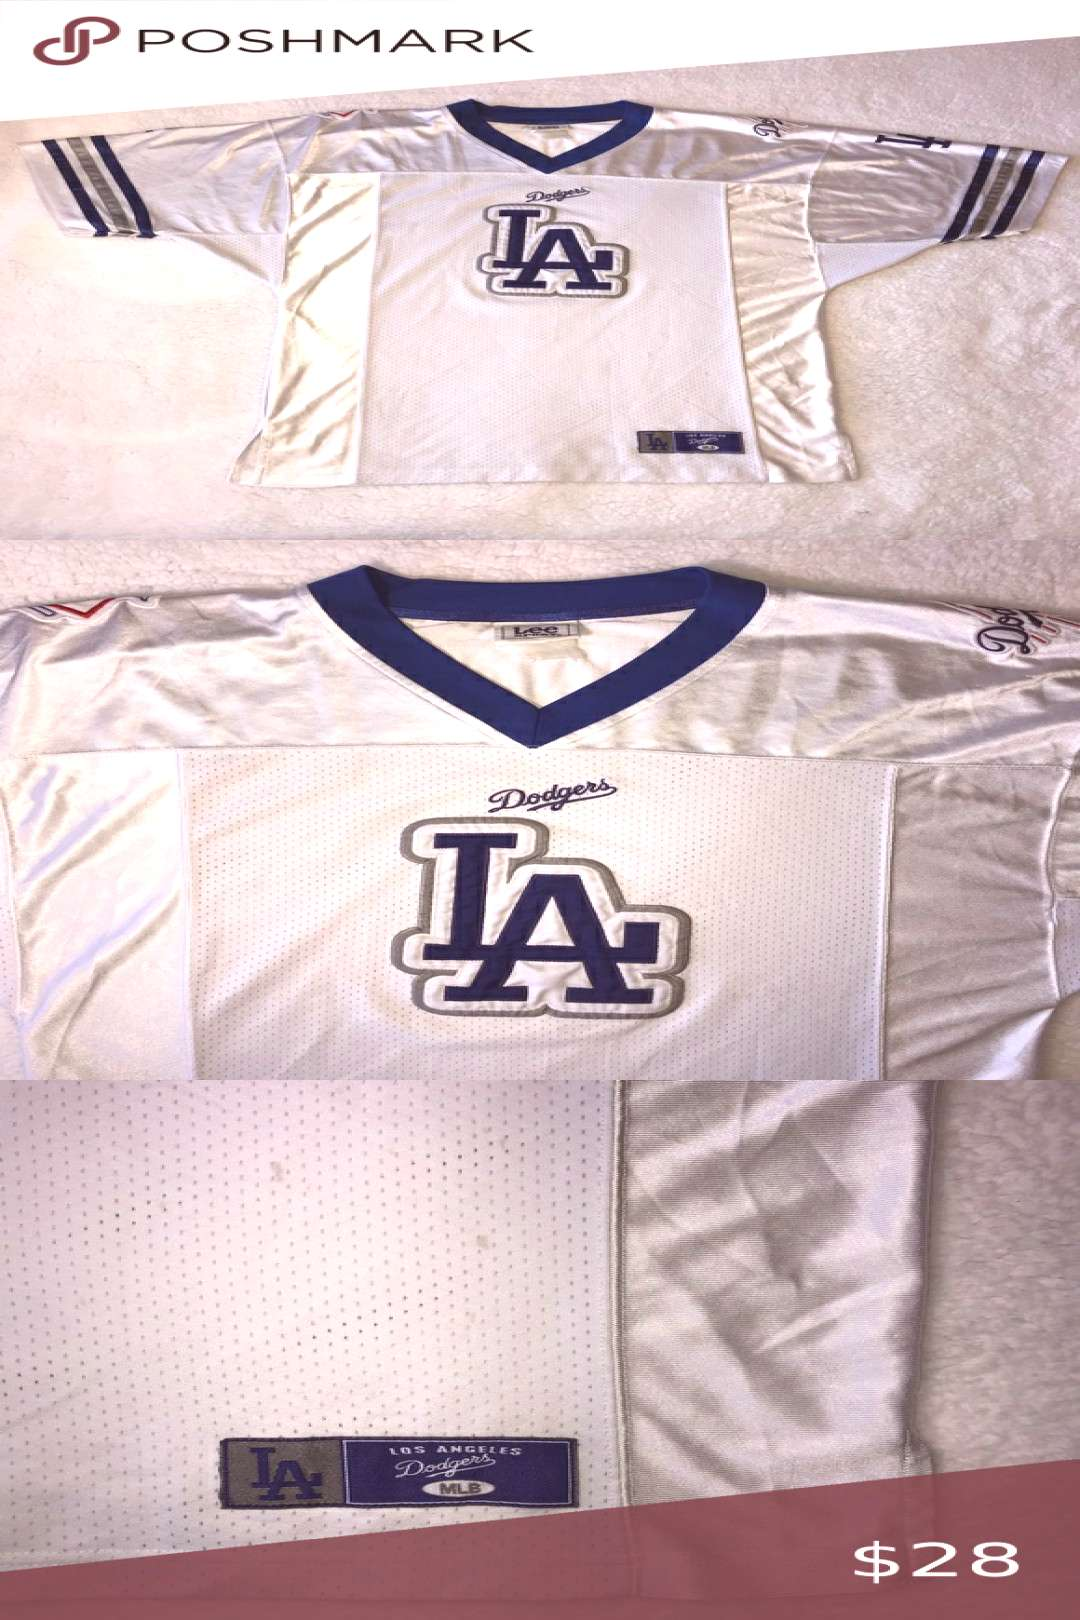 Lee Sport LA Dodgers Baseball Football Jersey Men's Size XL  Pit to pit: 21 inches  Middle of col